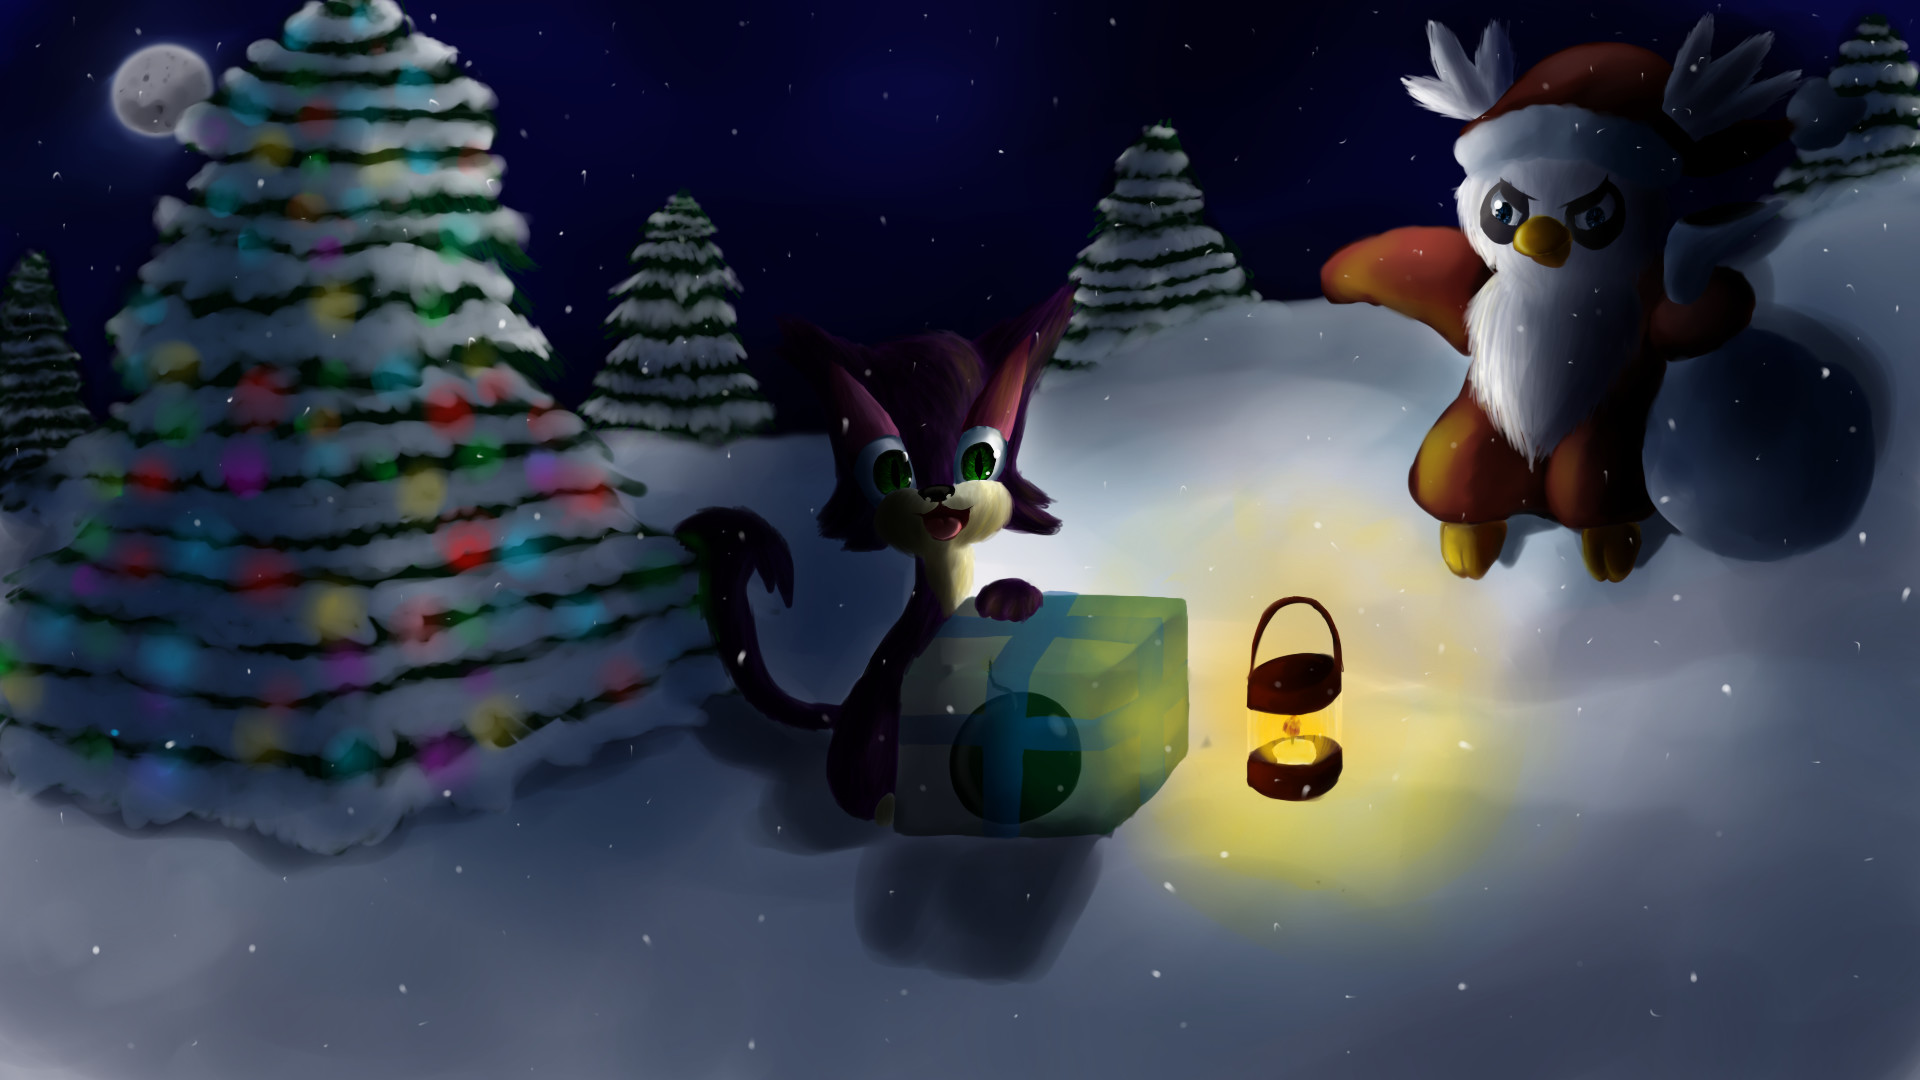 1920x1080 ... Bad Santa ~Christmas Pokemon Wallpaper~ by Chicorii